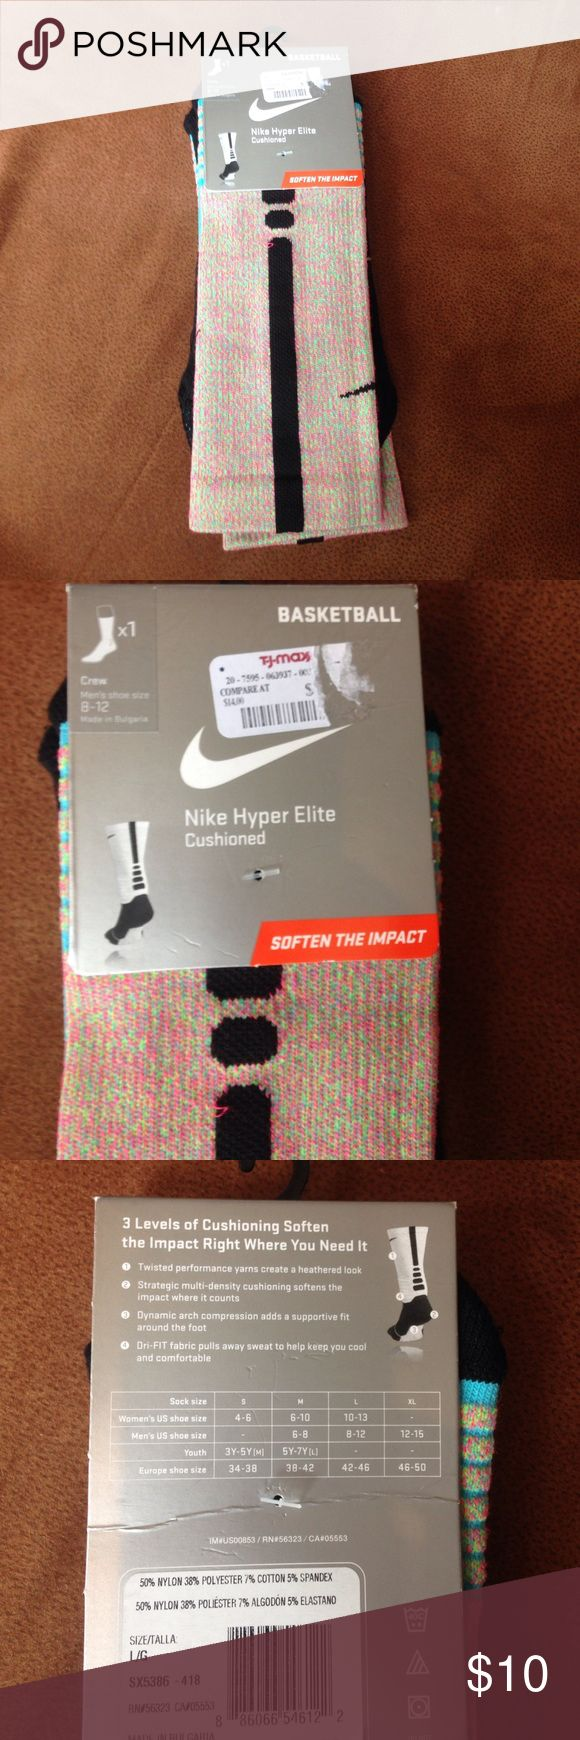 Nike Basketball Socks Can be unisex, Size L, men's shoe size 8-12, women's shoe size 10-13, bundle with another pair of Nike socks get a discount ! Nike Accessories Hosiery & Socks